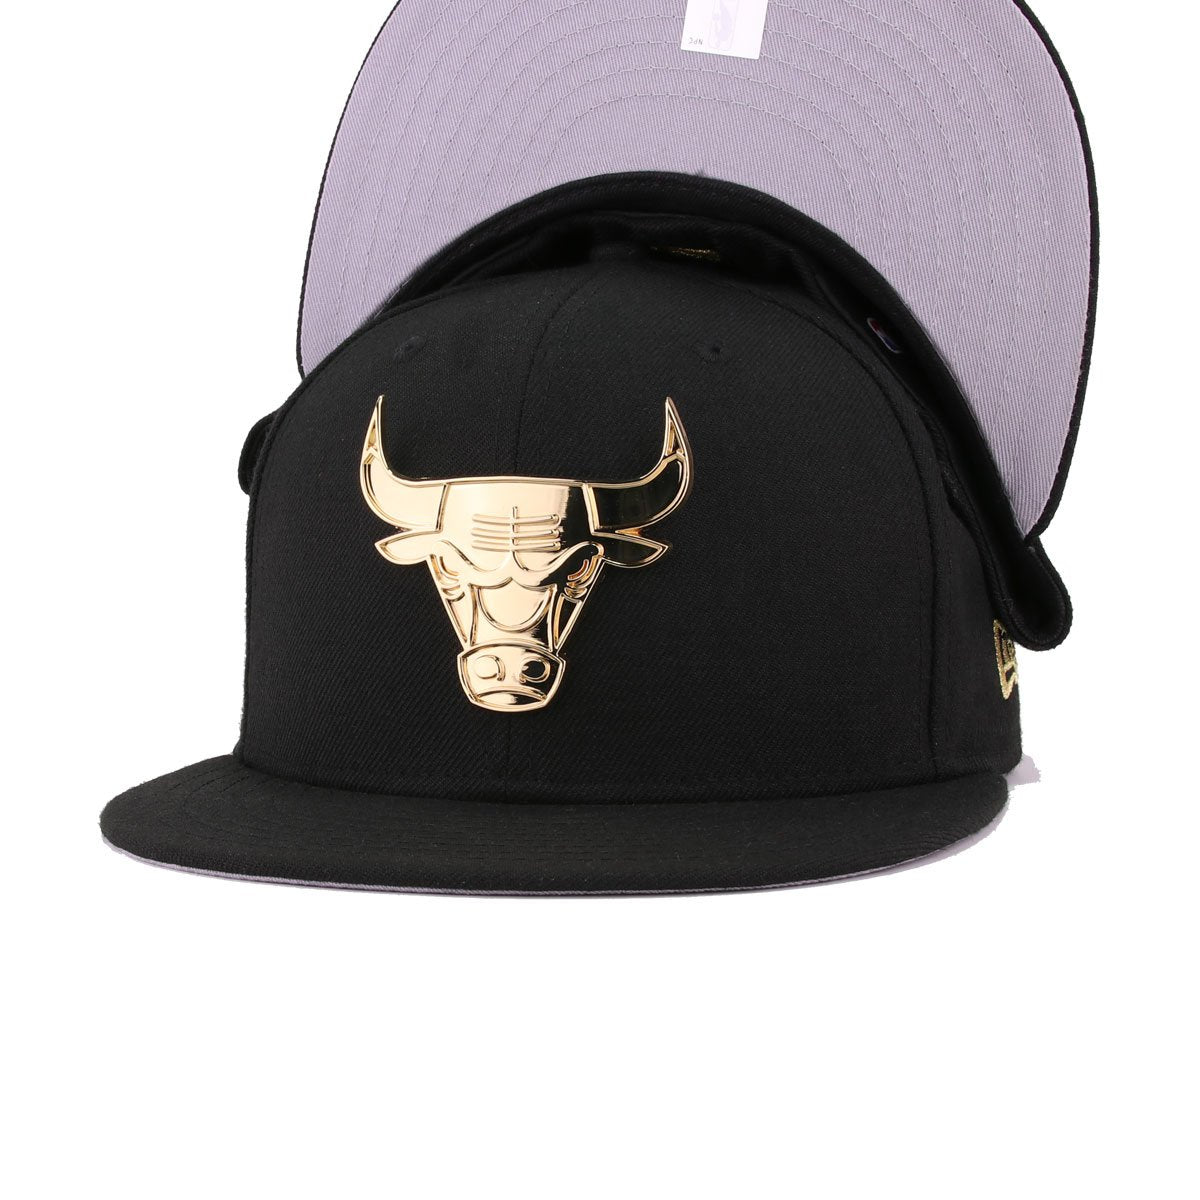 Chicago Bulls Black Gold Metal Badge New Era 59Fifty Fitted